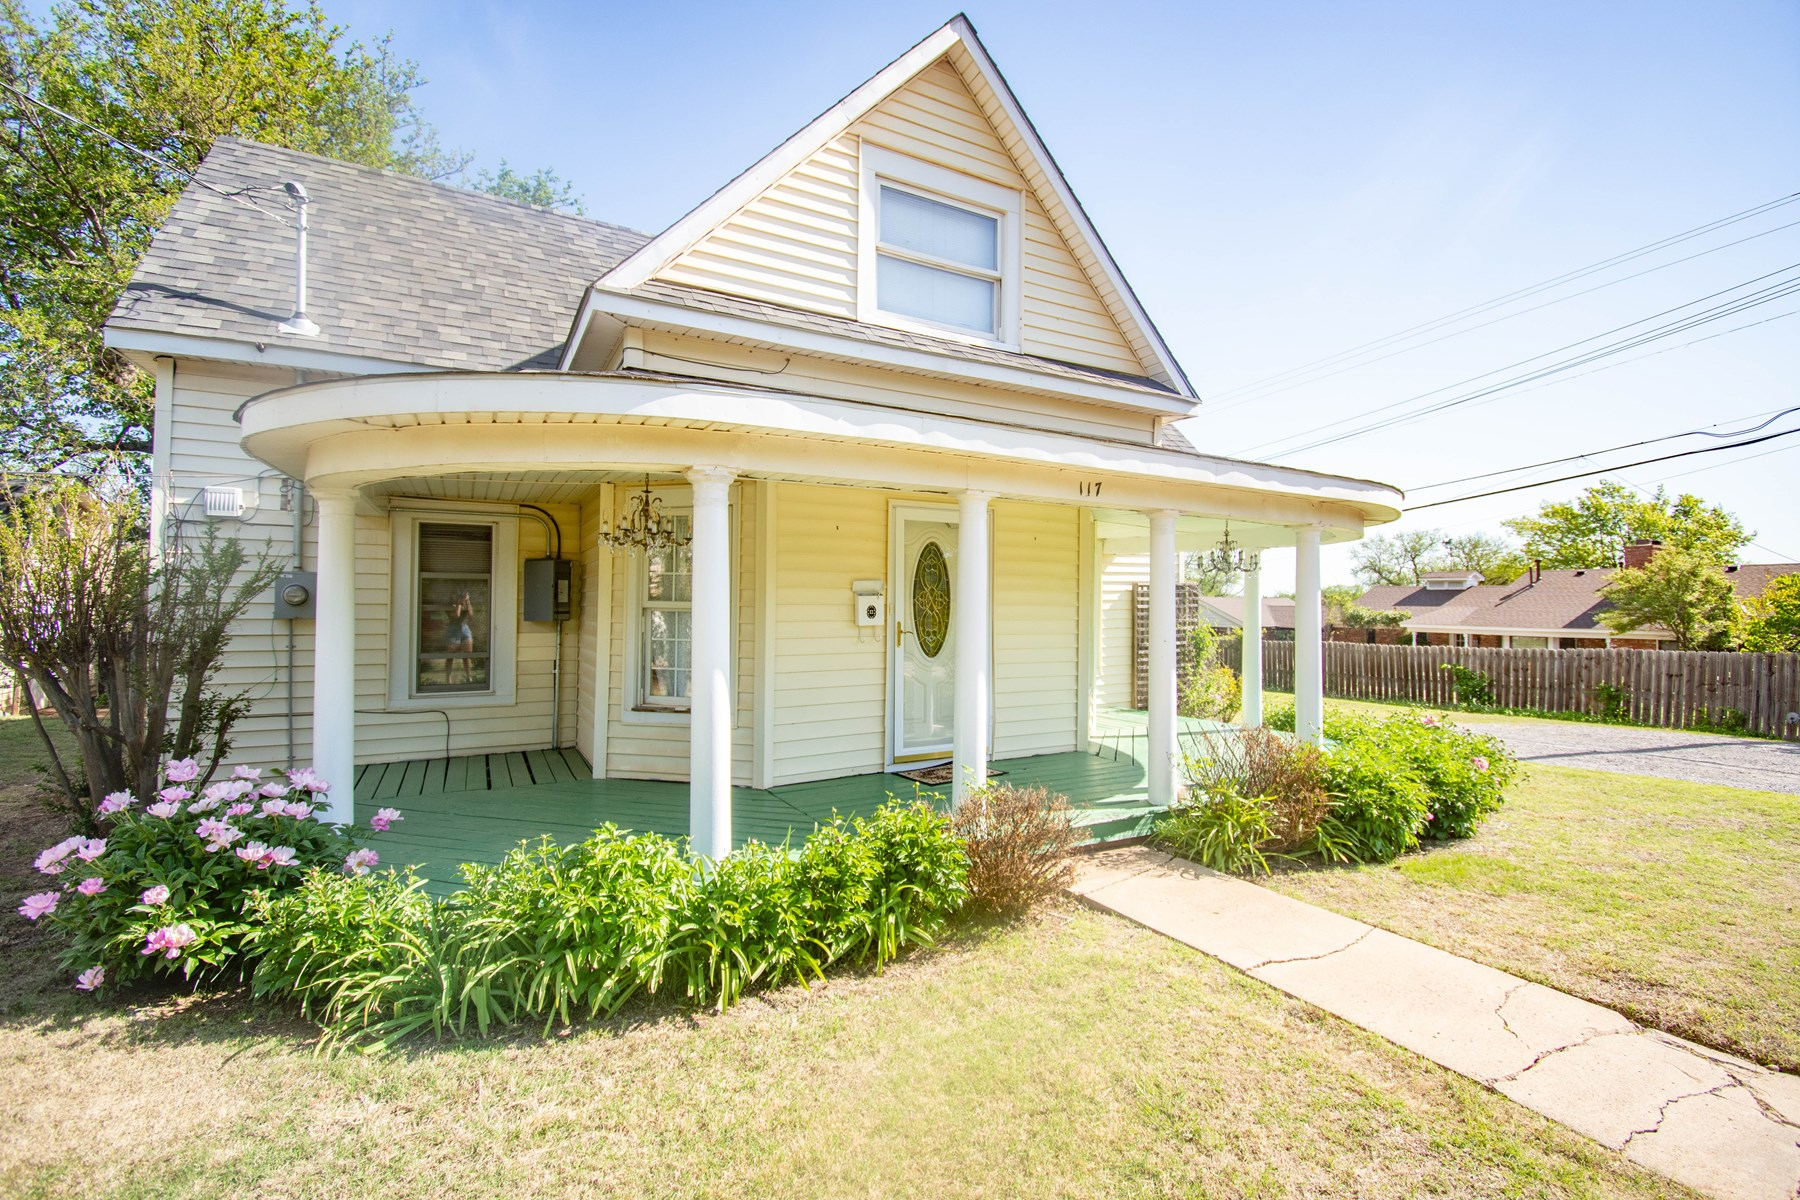 Home For Sale in CORDELL OK